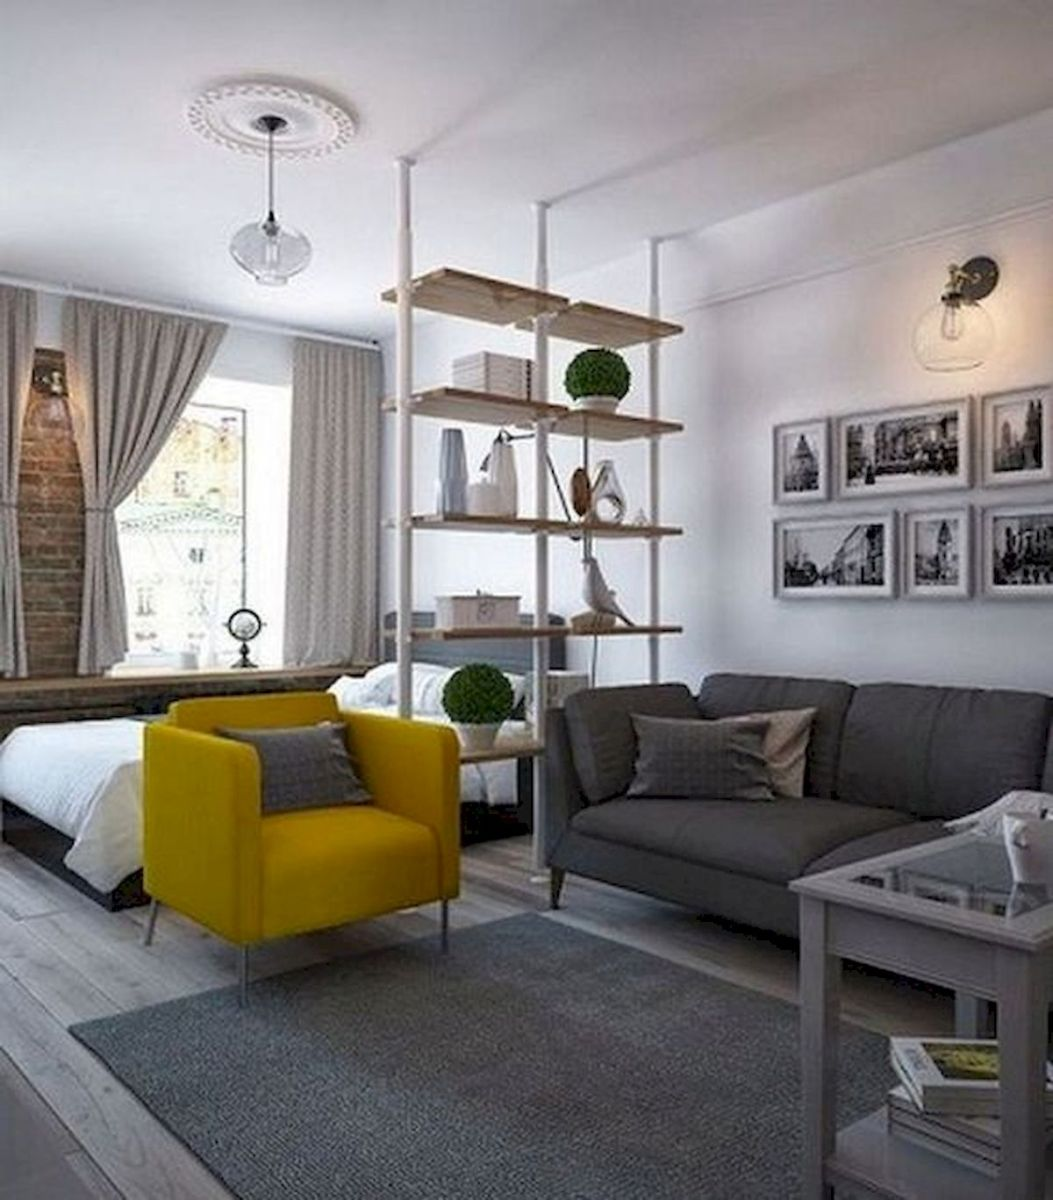 53 Best Minimalist Studio Apartment Small Spaces Decor Ideas (23)